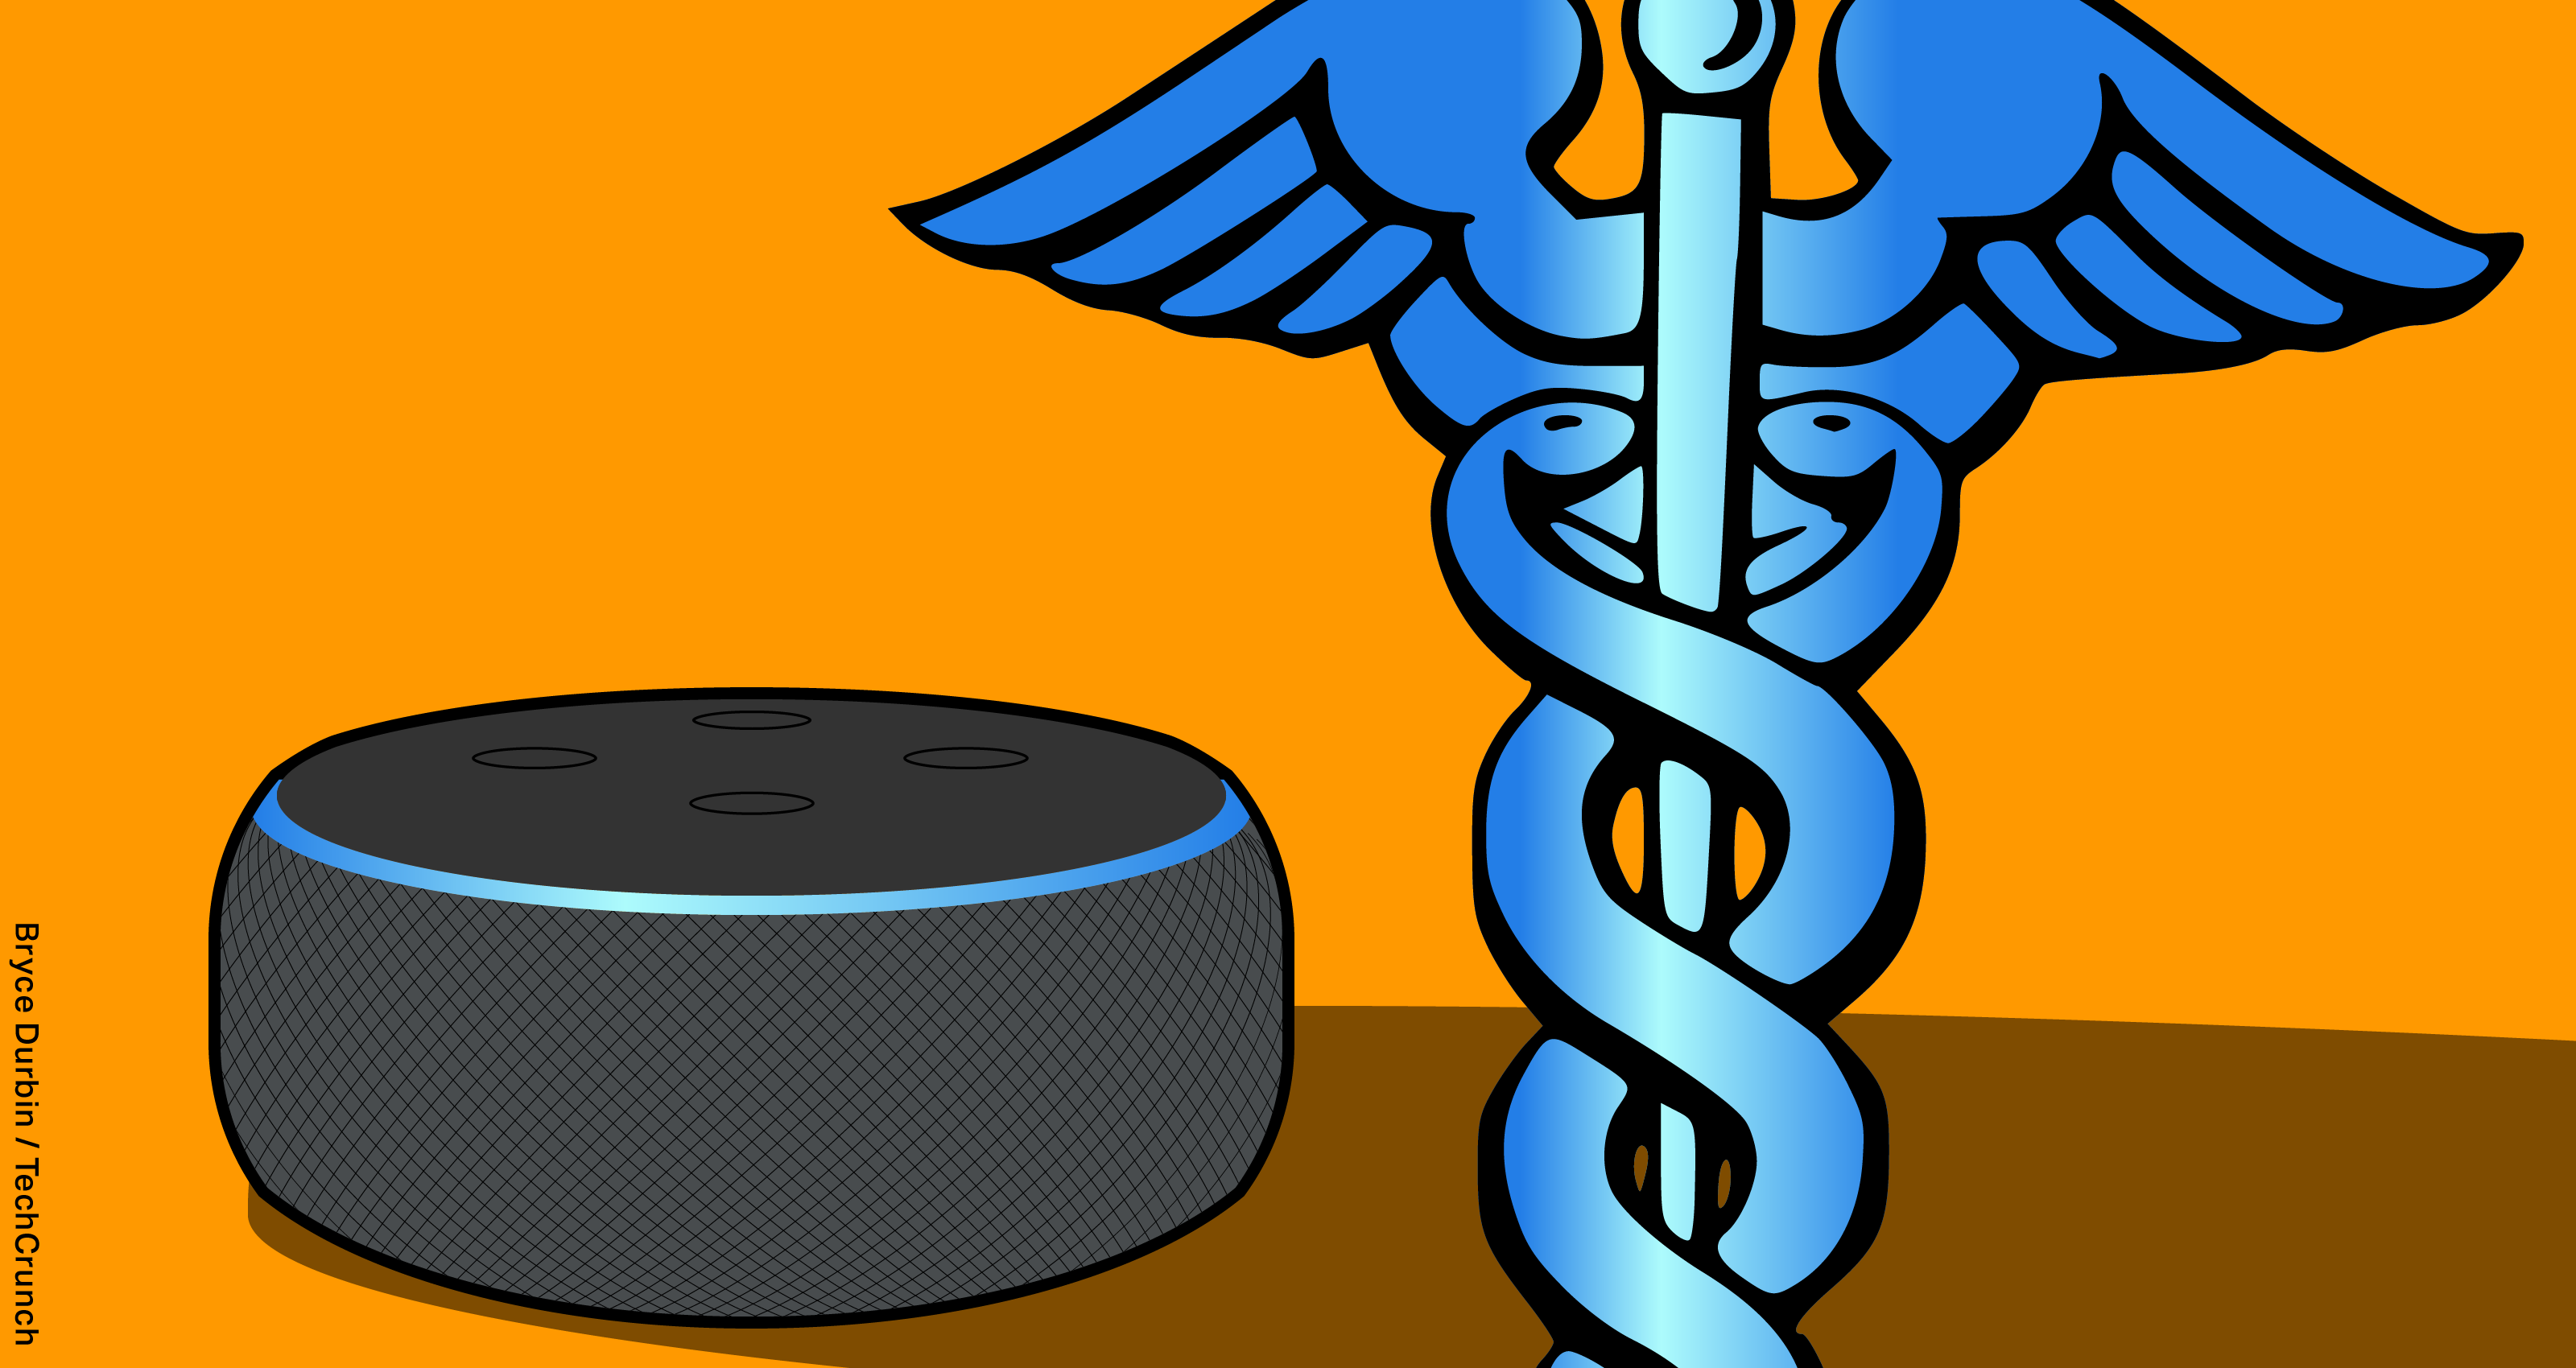 Amazon Alexa launches its first HIPAA-compliant medical skills